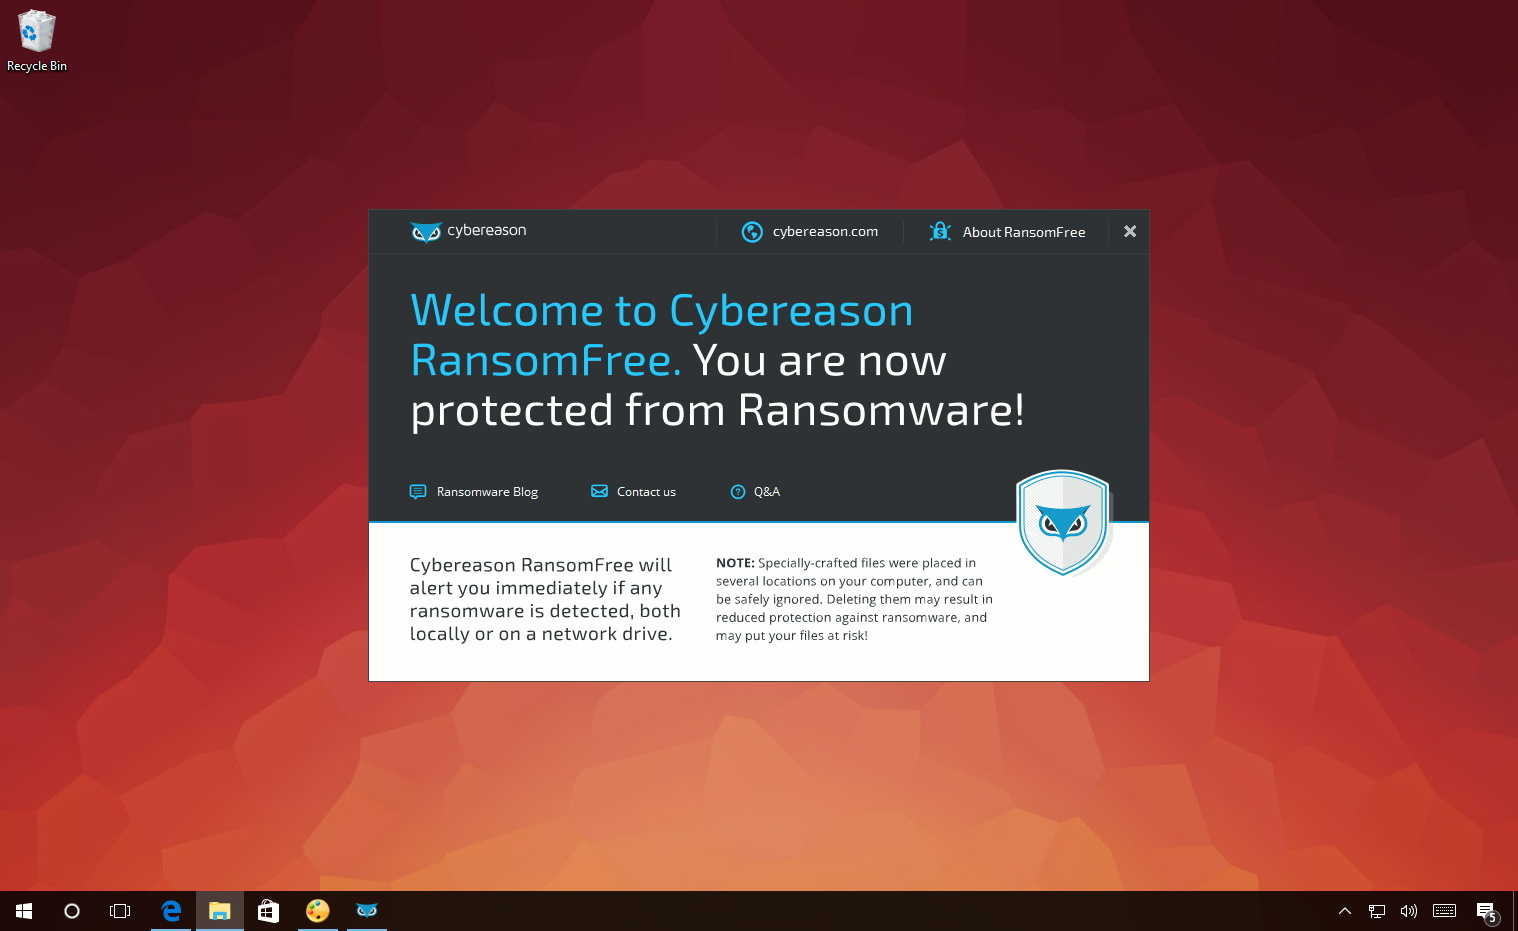 Cybereason RansomFree anti-ransomware software